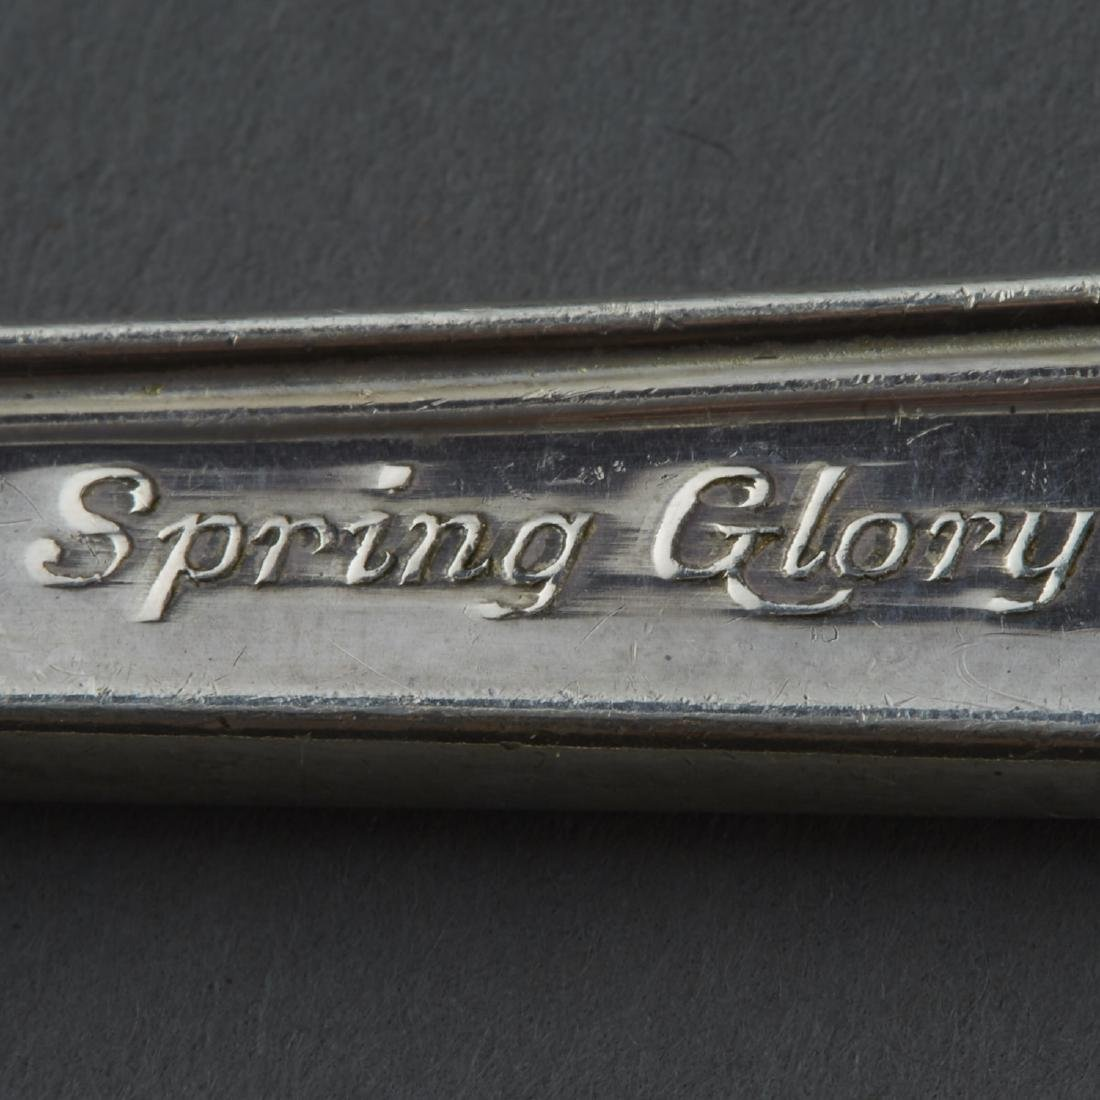 Set of 101 Pieces of Spring Glory Sterling Silver - 5